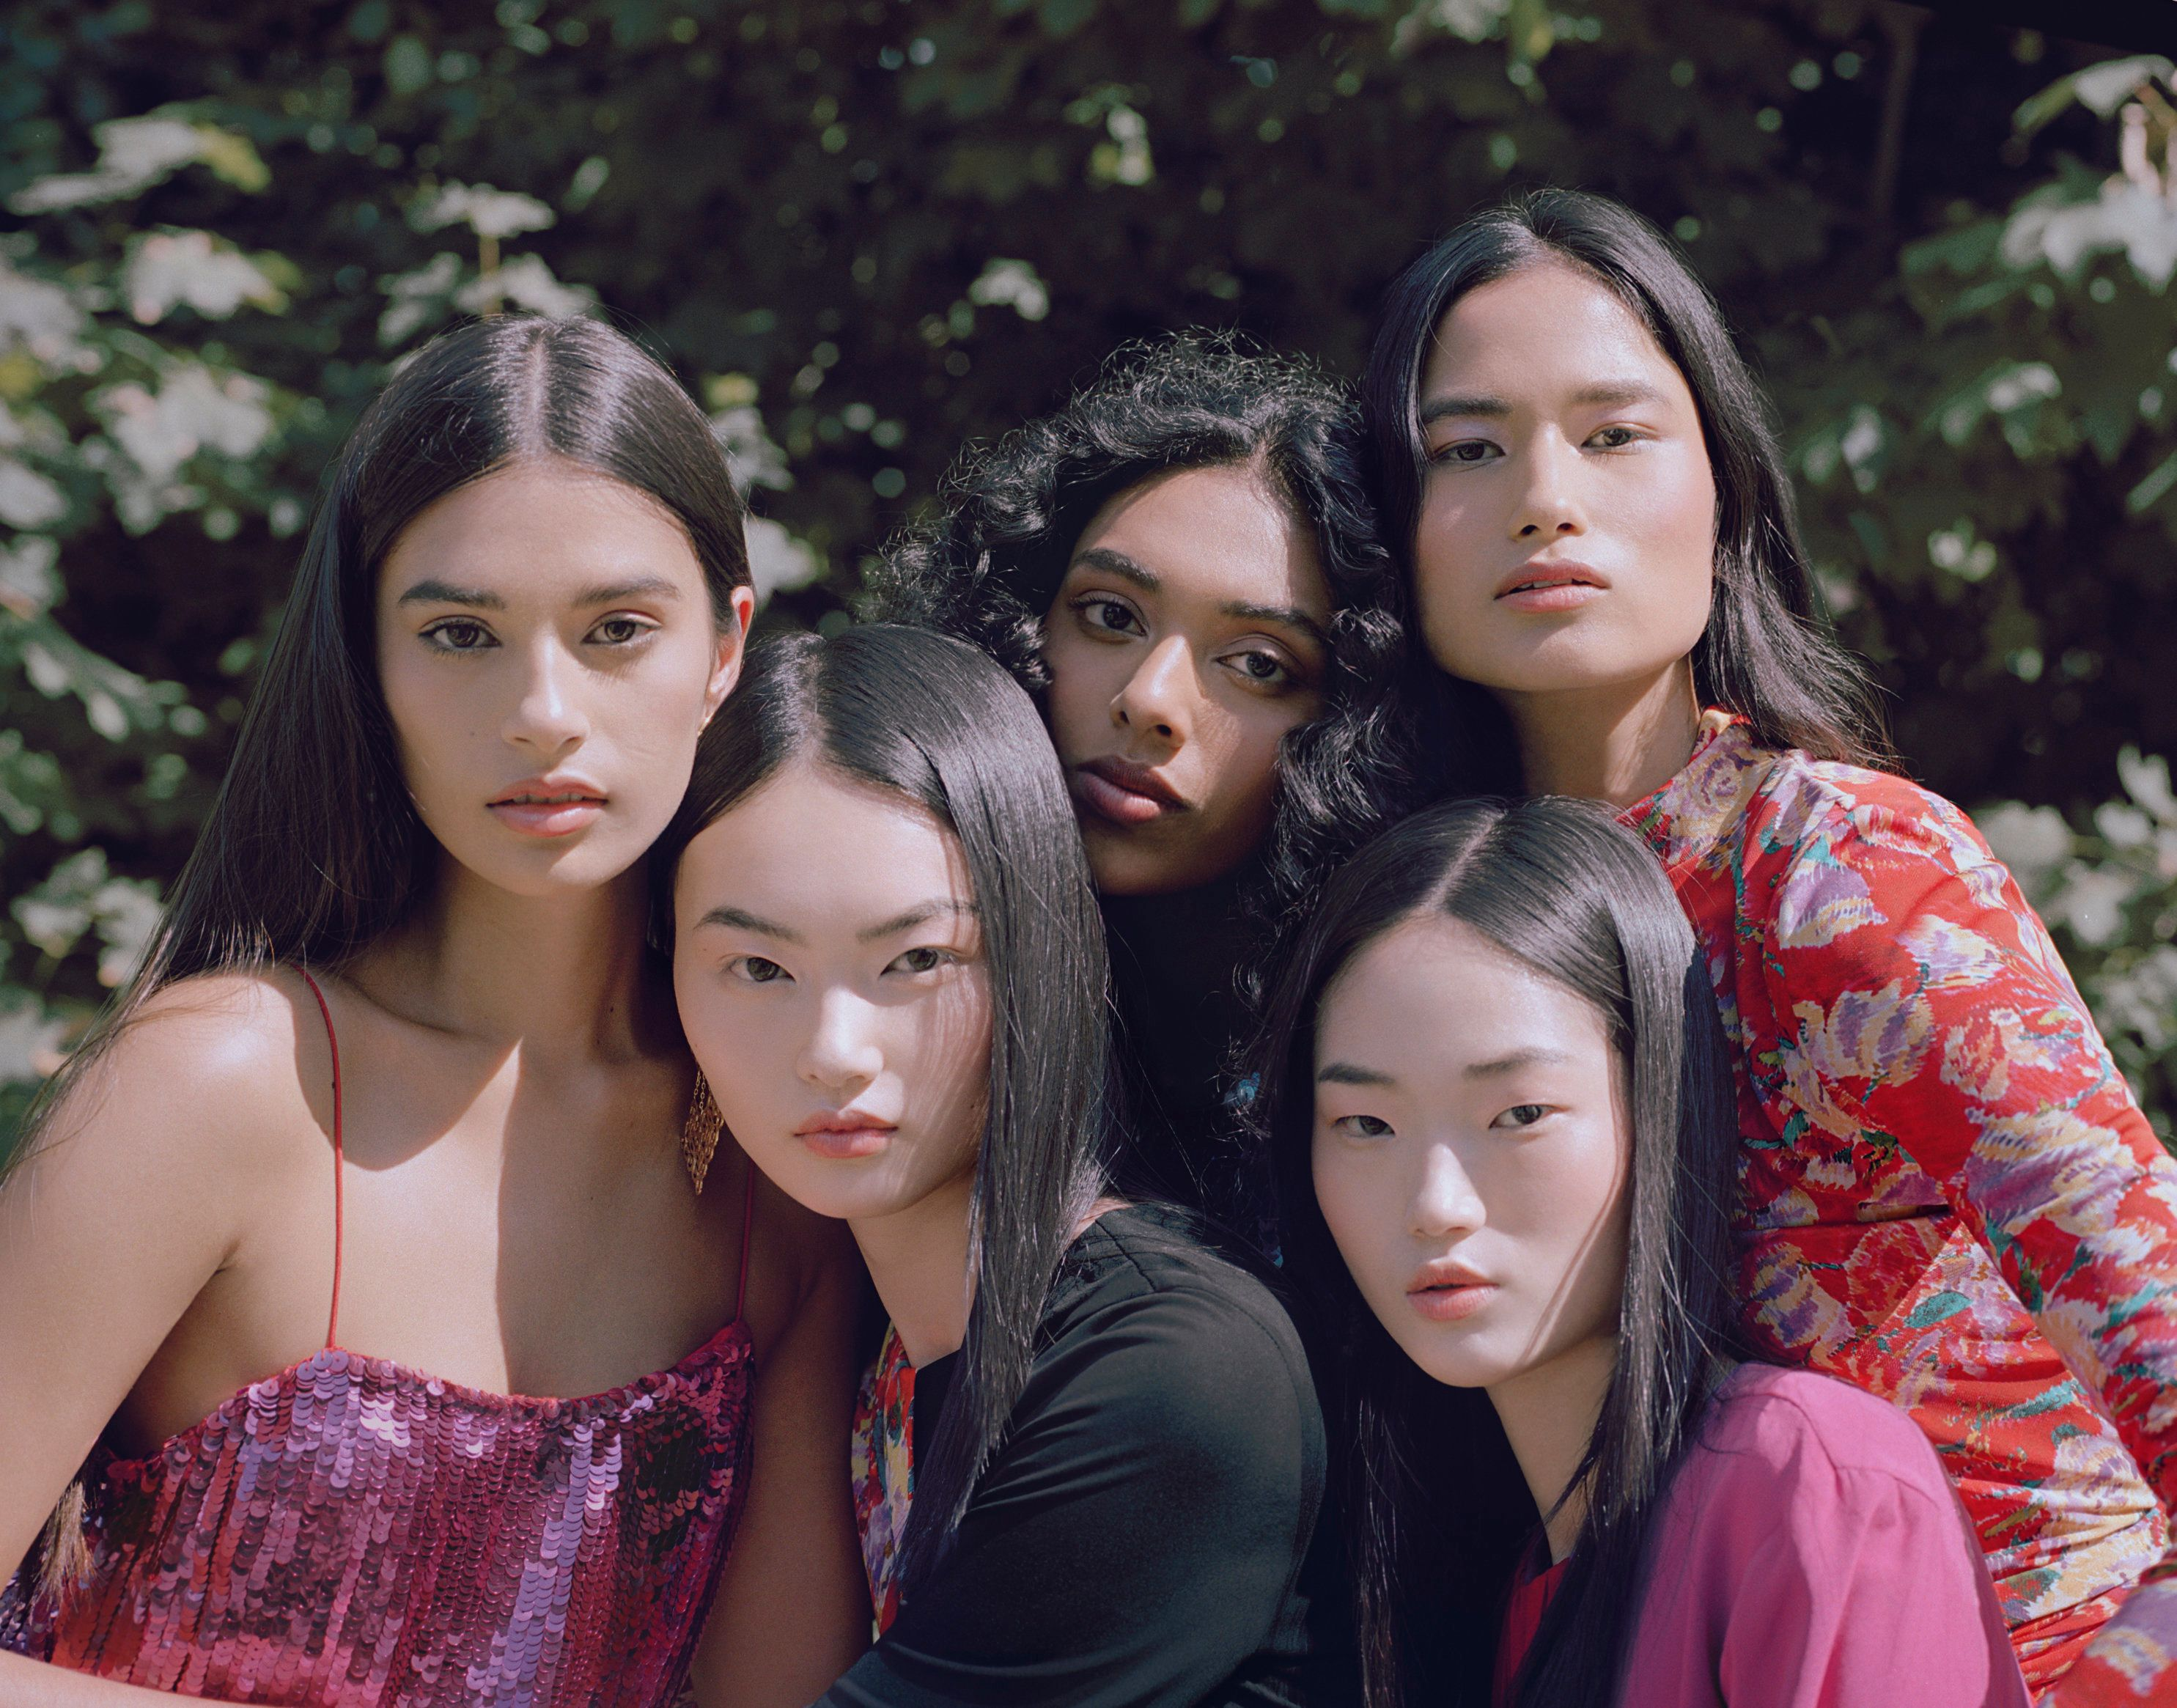 Fashion Designer Casts All Asian Models In Ads To Showcase Diversity Across Asia